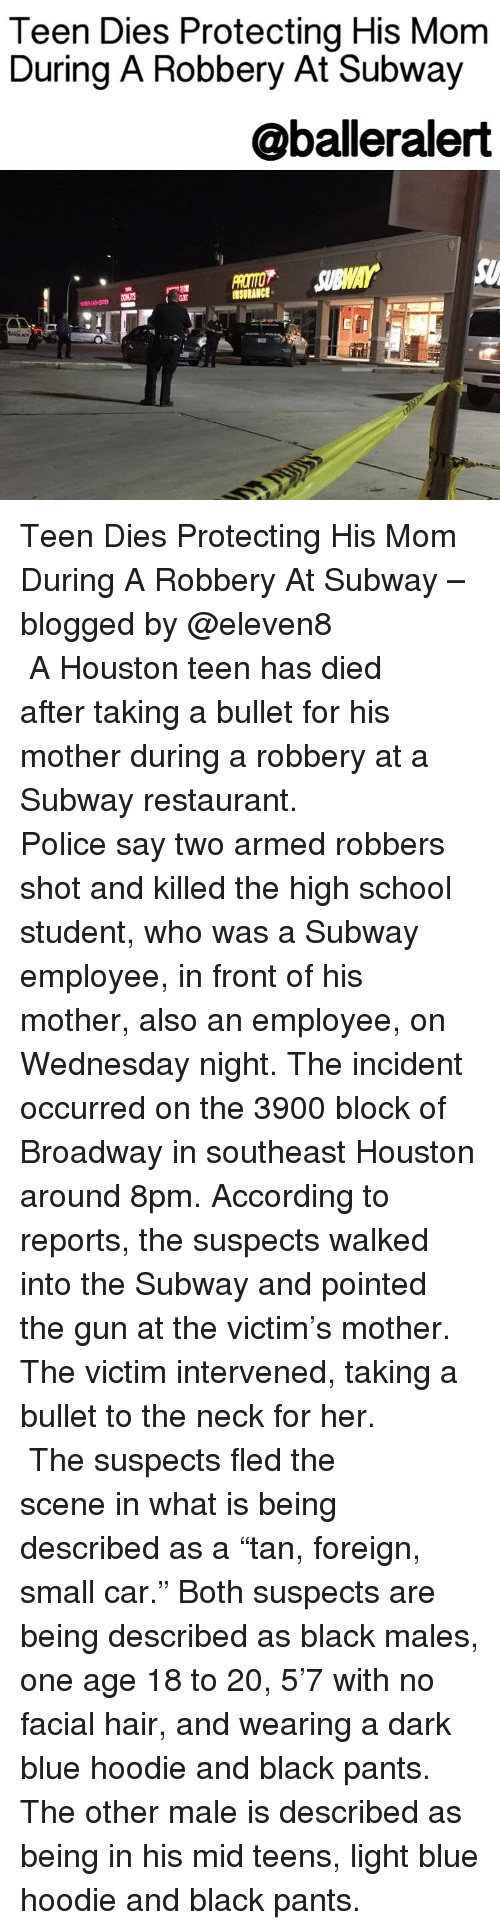 "Memes, Subway, and Blog: Teen Dies Protecting His Mom  During A Robbery At Subway  @balleralert Teen Dies Protecting His Mom During A Robbery At Subway – blogged by @eleven8 ⠀⠀⠀⠀⠀⠀⠀⠀⠀ ⠀⠀⠀⠀⠀⠀⠀⠀⠀ A Houston teen has died after taking a bullet for his mother during a robbery at a Subway restaurant. ⠀⠀⠀⠀⠀⠀⠀⠀⠀ ⠀⠀⠀⠀⠀⠀⠀⠀⠀ Police say two armed robbers shot and killed the high school student, who was a Subway employee, in front of his mother, also an employee, on Wednesday night. The incident occurred on the 3900 block of Broadway in southeast Houston around 8pm. According to reports, the suspects walked into the Subway and pointed the gun at the victim's mother. The victim intervened, taking a bullet to the neck for her. ⠀⠀⠀⠀⠀⠀⠀⠀⠀ ⠀⠀⠀⠀⠀⠀⠀⠀⠀ The suspects fled the scene in what is being described as a ""tan, foreign, small car."" Both suspects are being described as black males, one age 18 to 20, 5'7 with no facial hair, and wearing a dark blue hoodie and black pants. The other male is described as being in his mid teens, light blue hoodie and black pants."